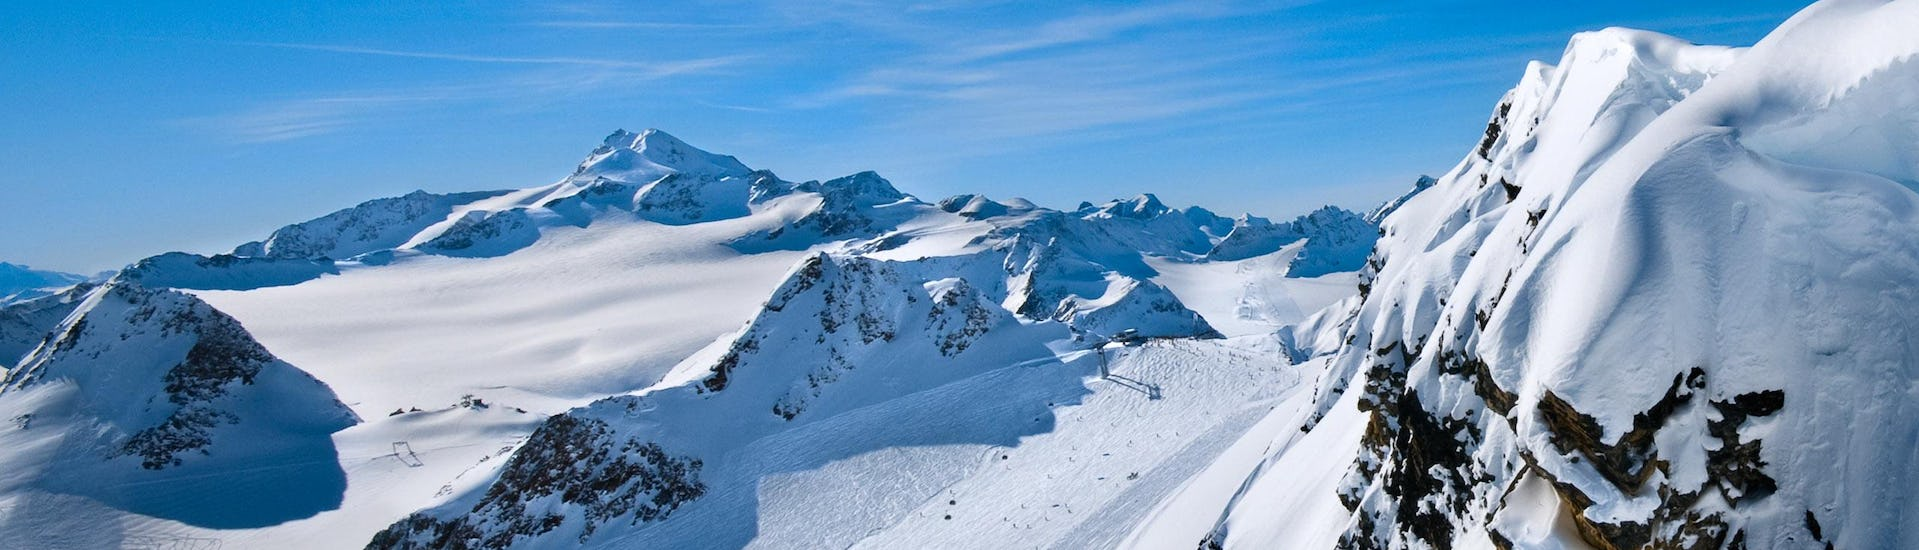 A view of a snowy mountain top in the ski resort of Pra Loup, where ski schools gather to start their ski lessons.